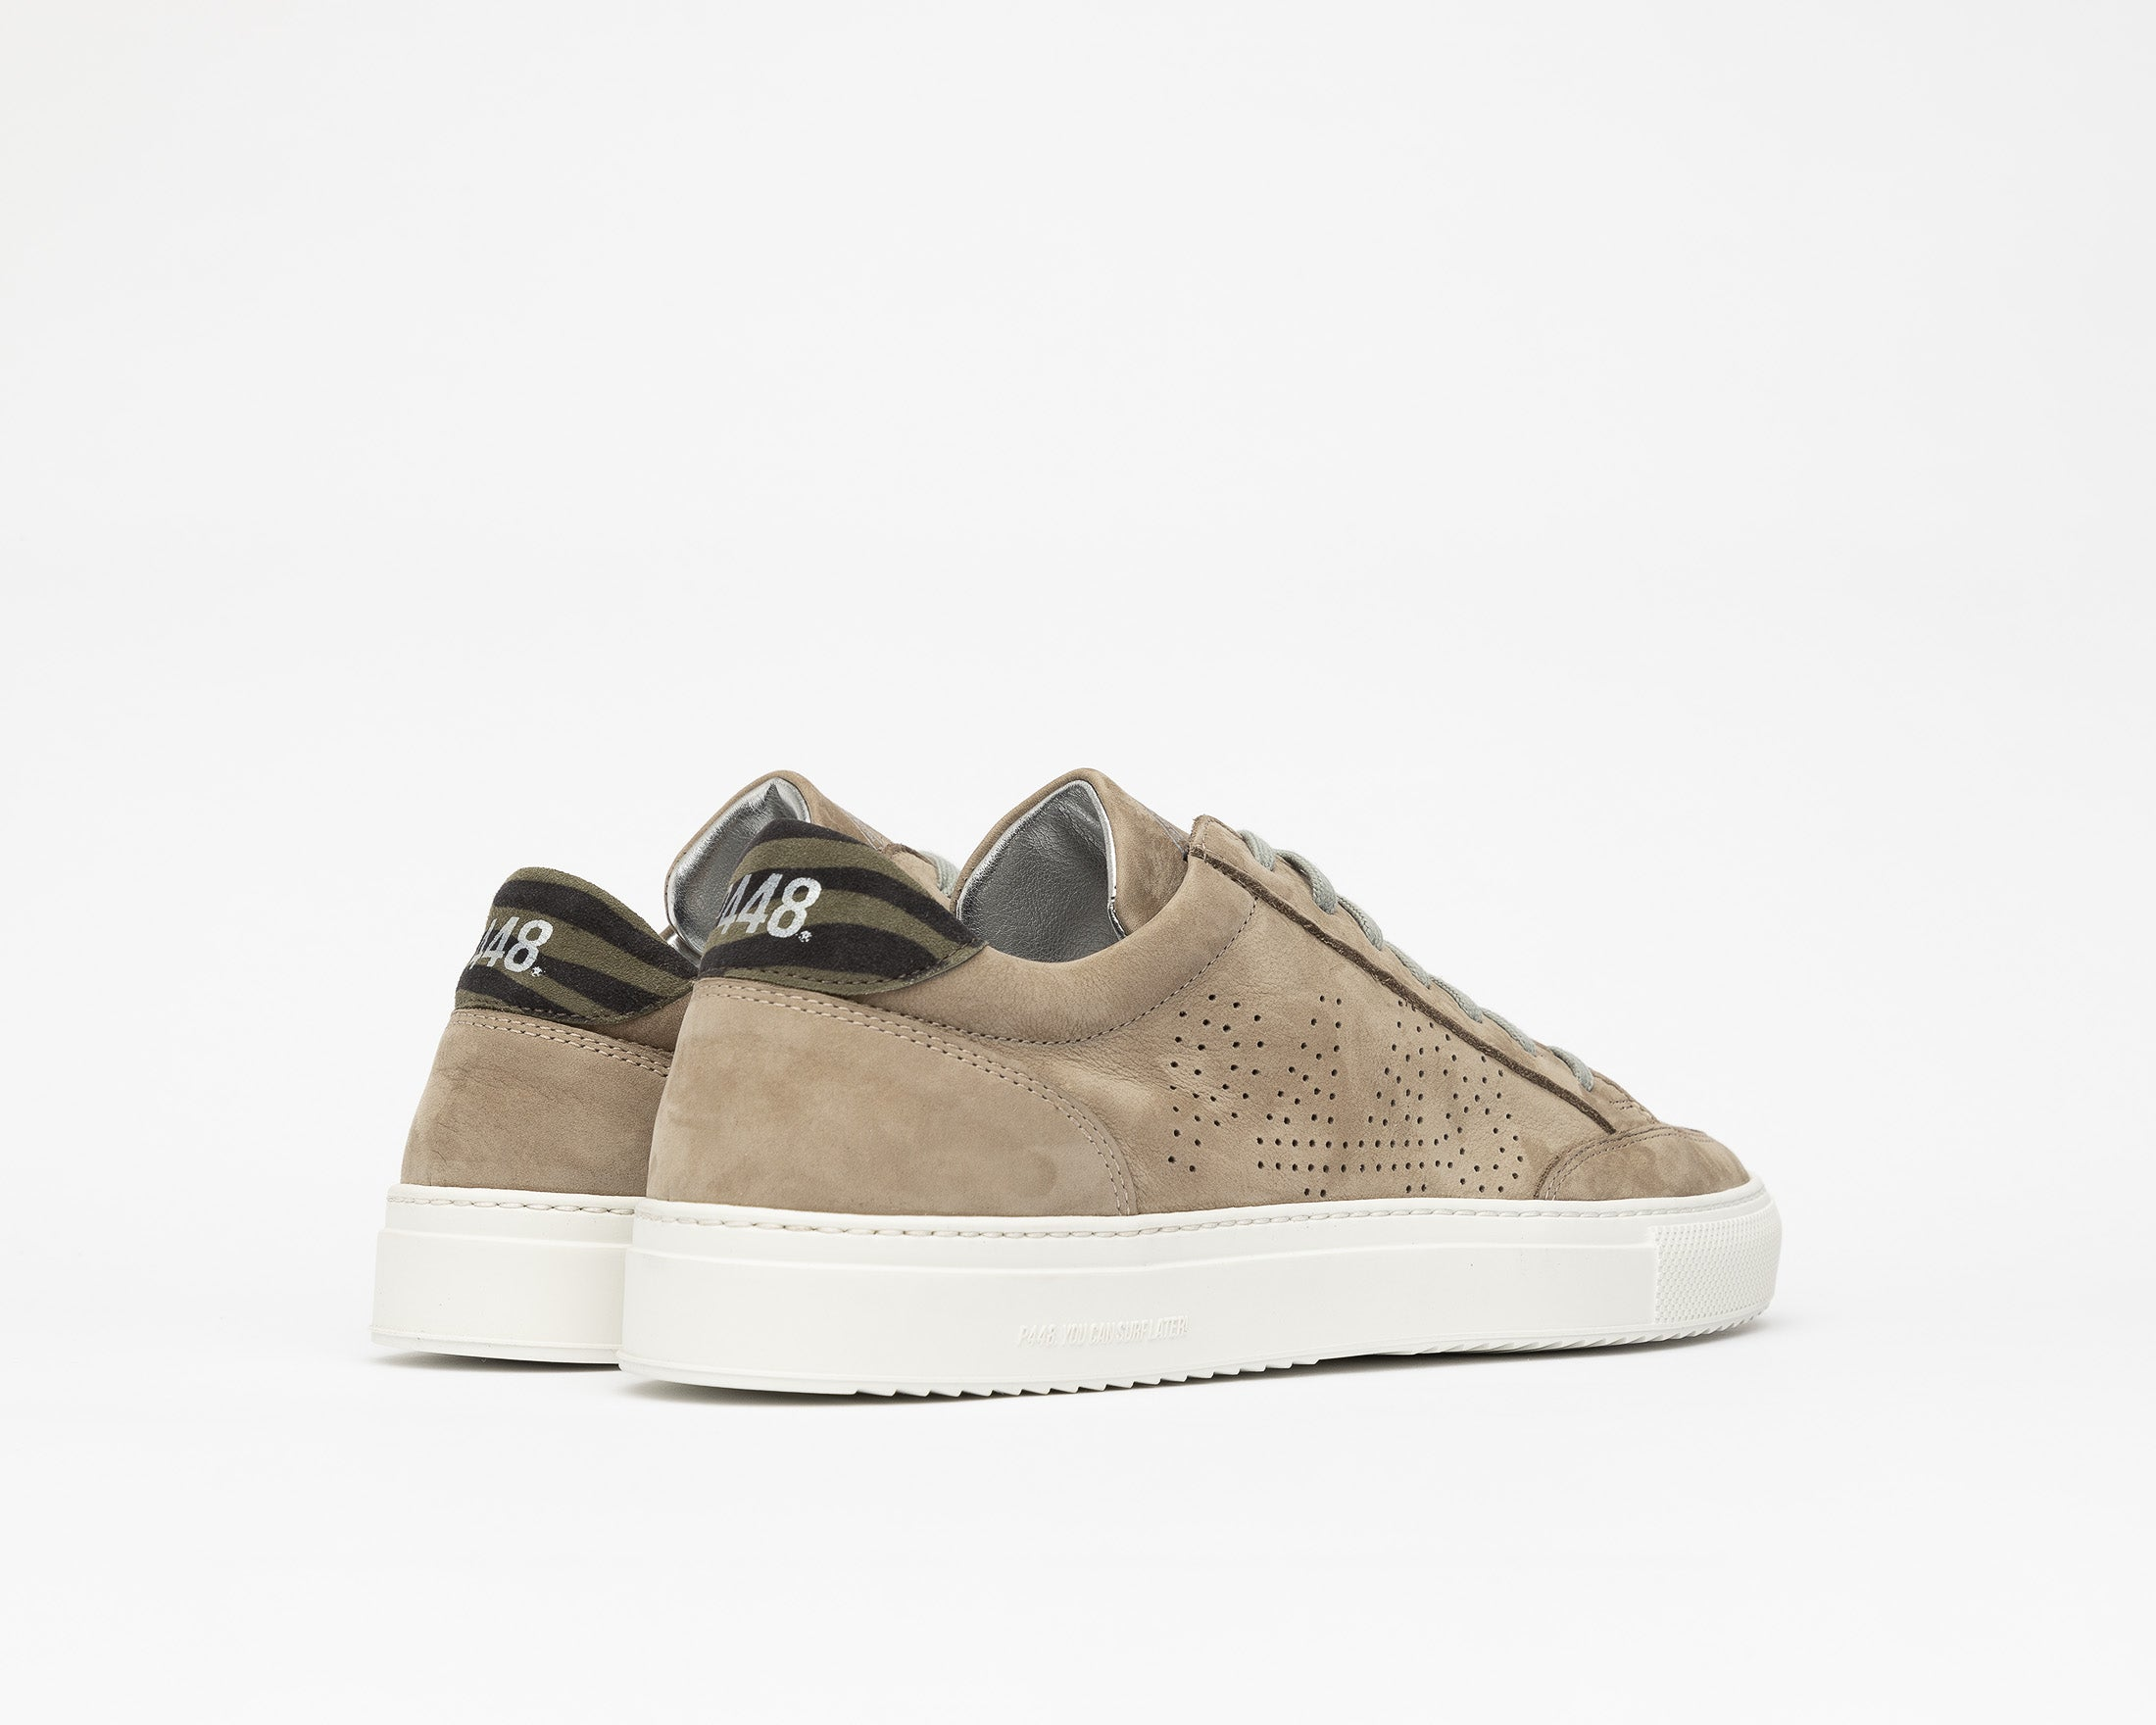 Soho Low-Top Sneaker in Gray Nab - Back